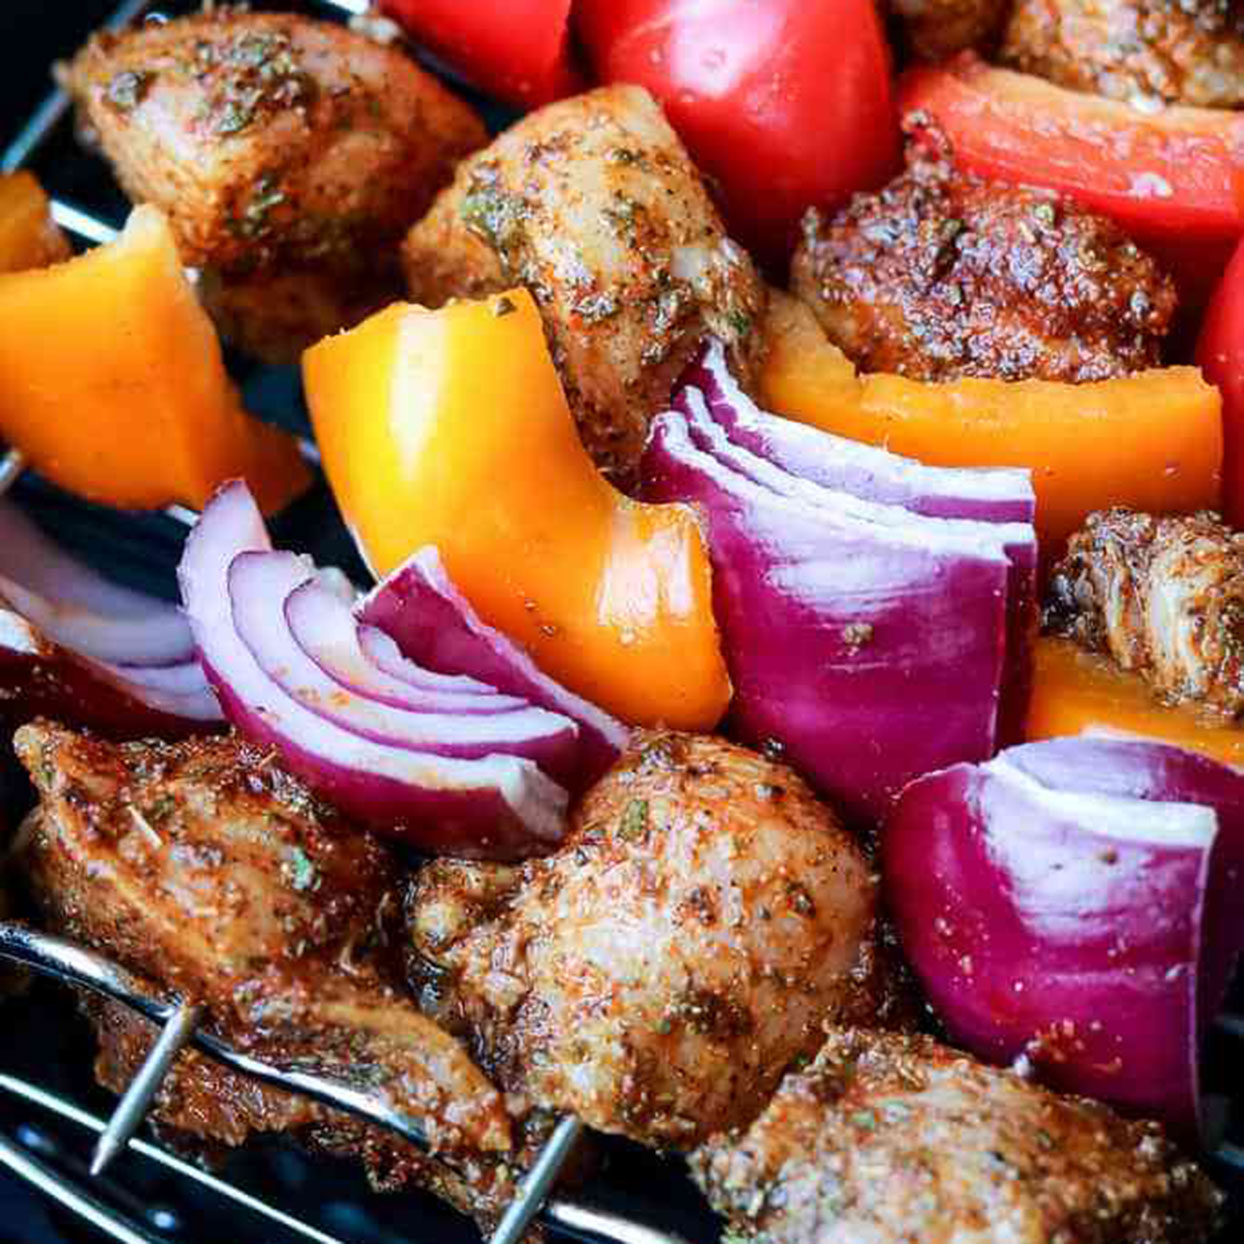 In addition to the chicken, the air fryer also perfectly cooks the orange and red bell peppers and onion chunks. Eat these kebabs solo or put into a tortilla with salsa and cheese to make a taco.